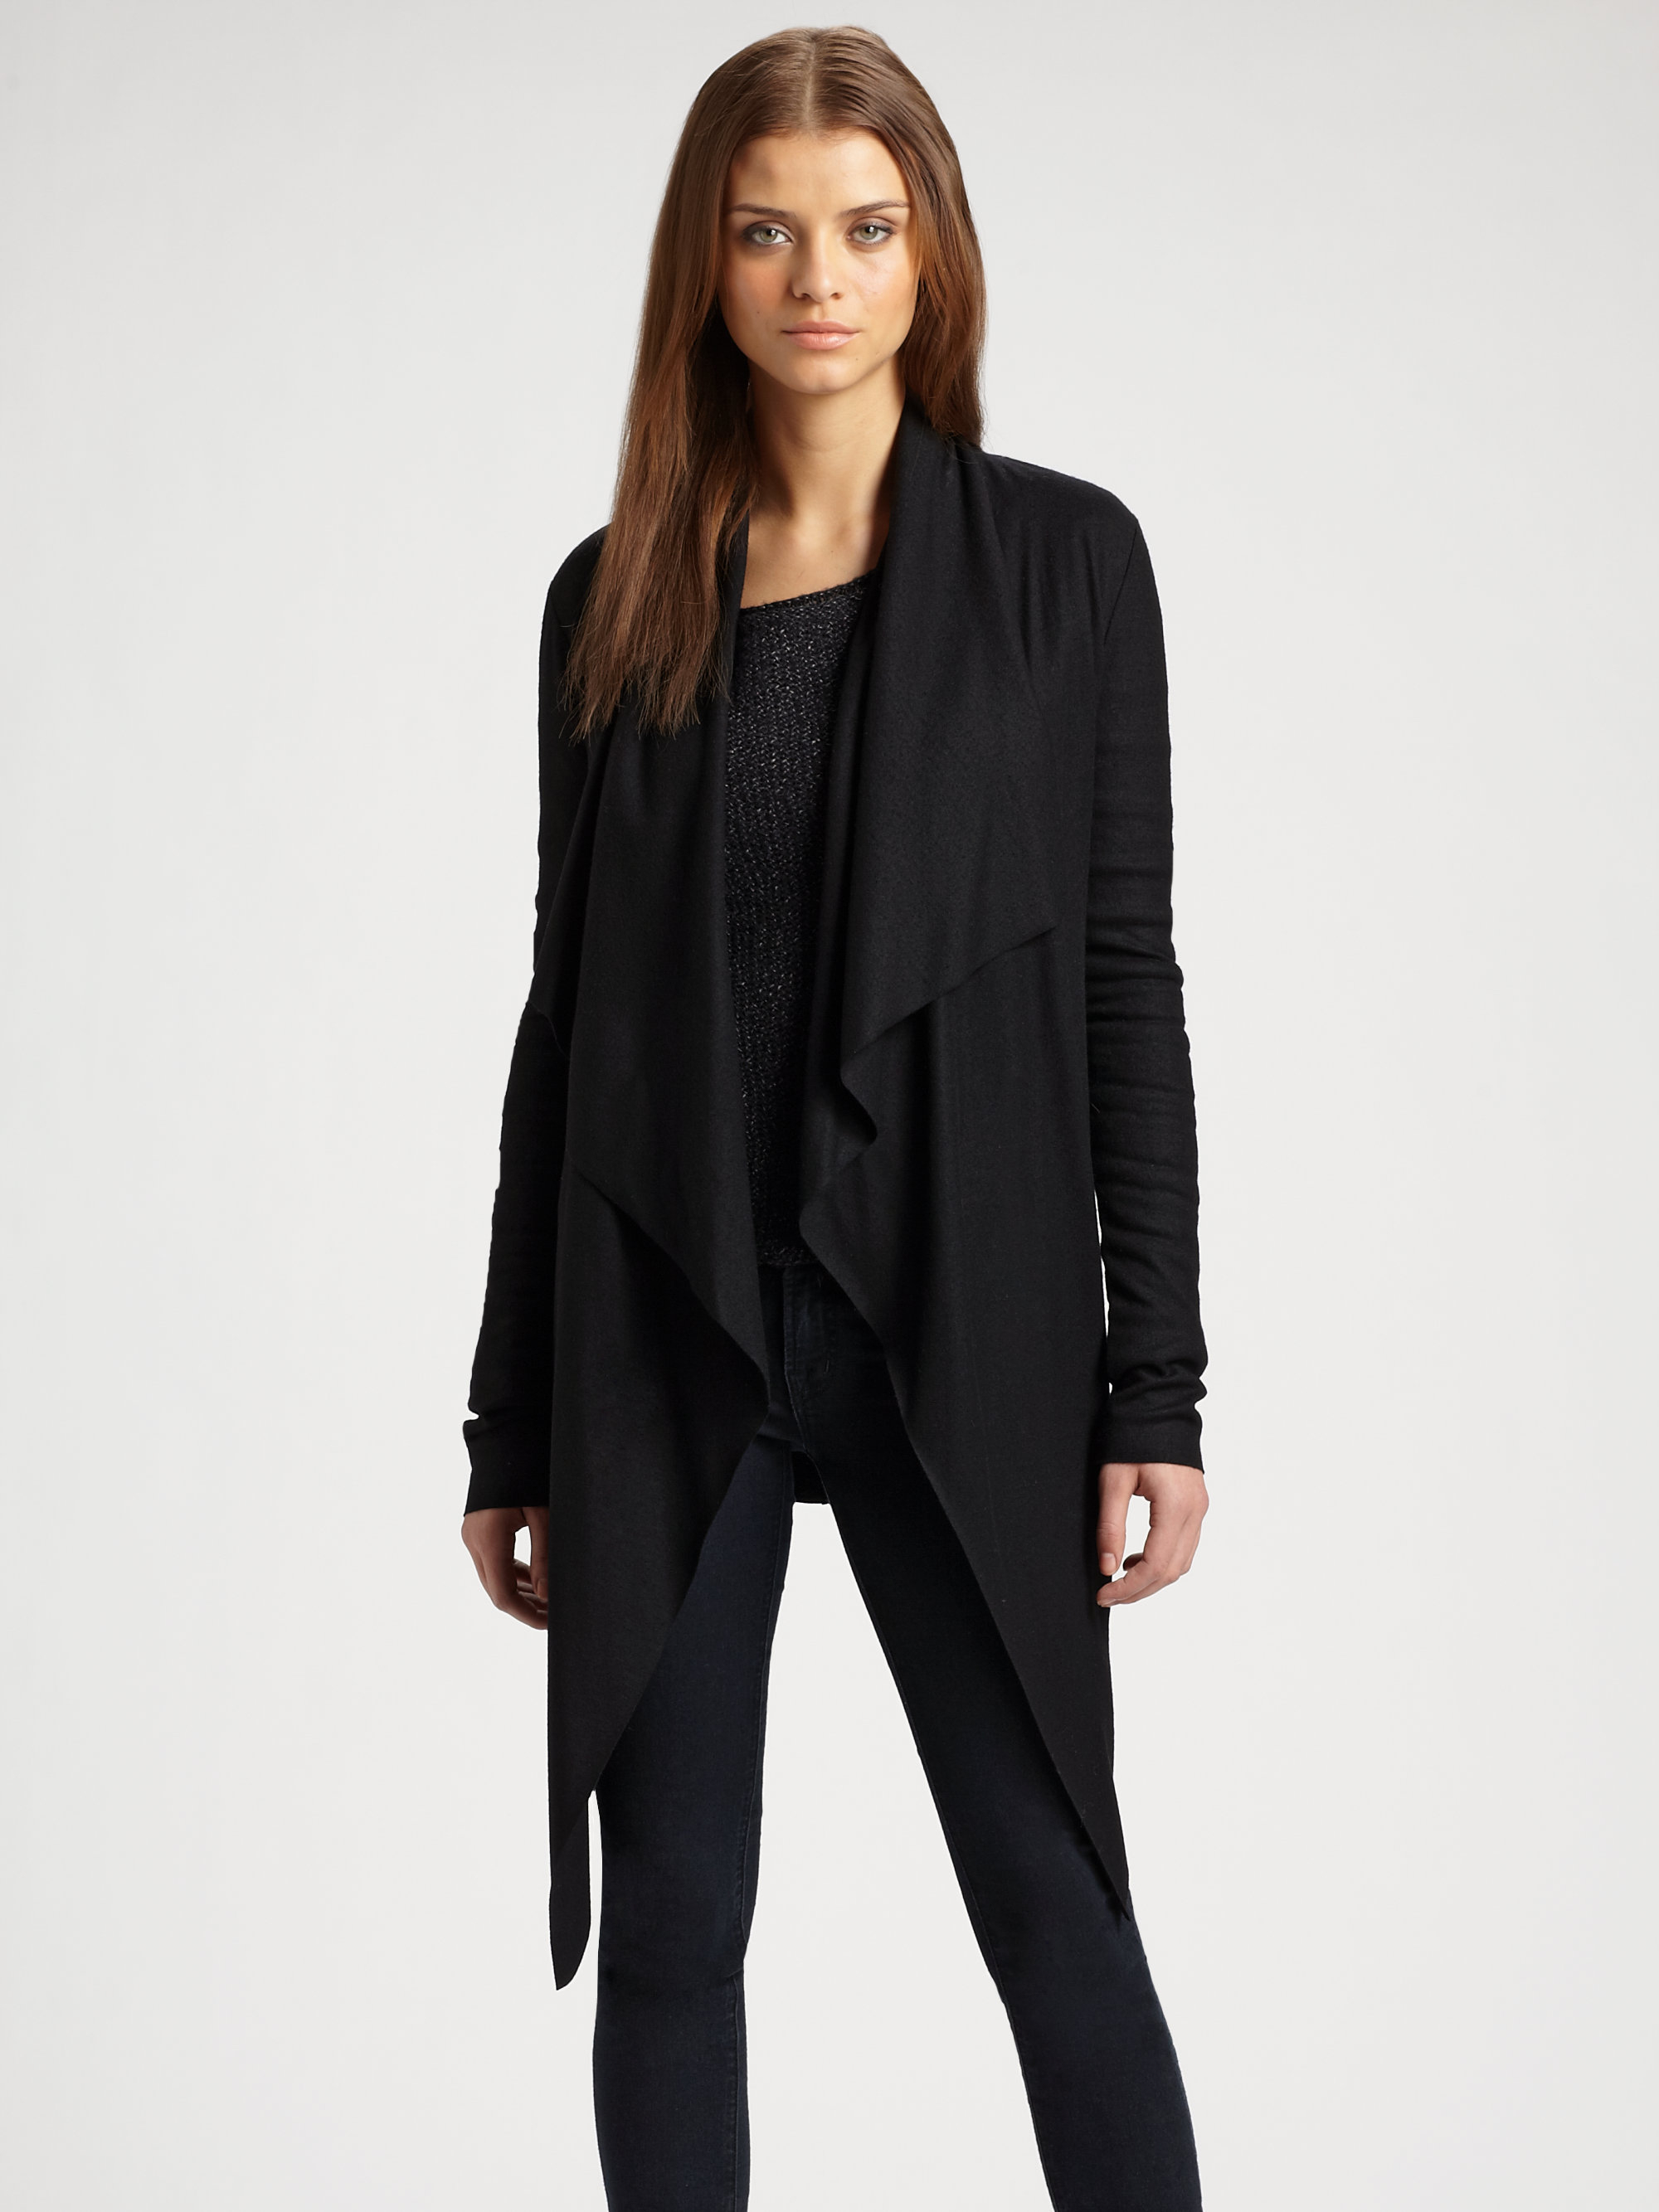 Helmut lang Sonar Belted Wool Jersey Cardigan in Black | Lyst